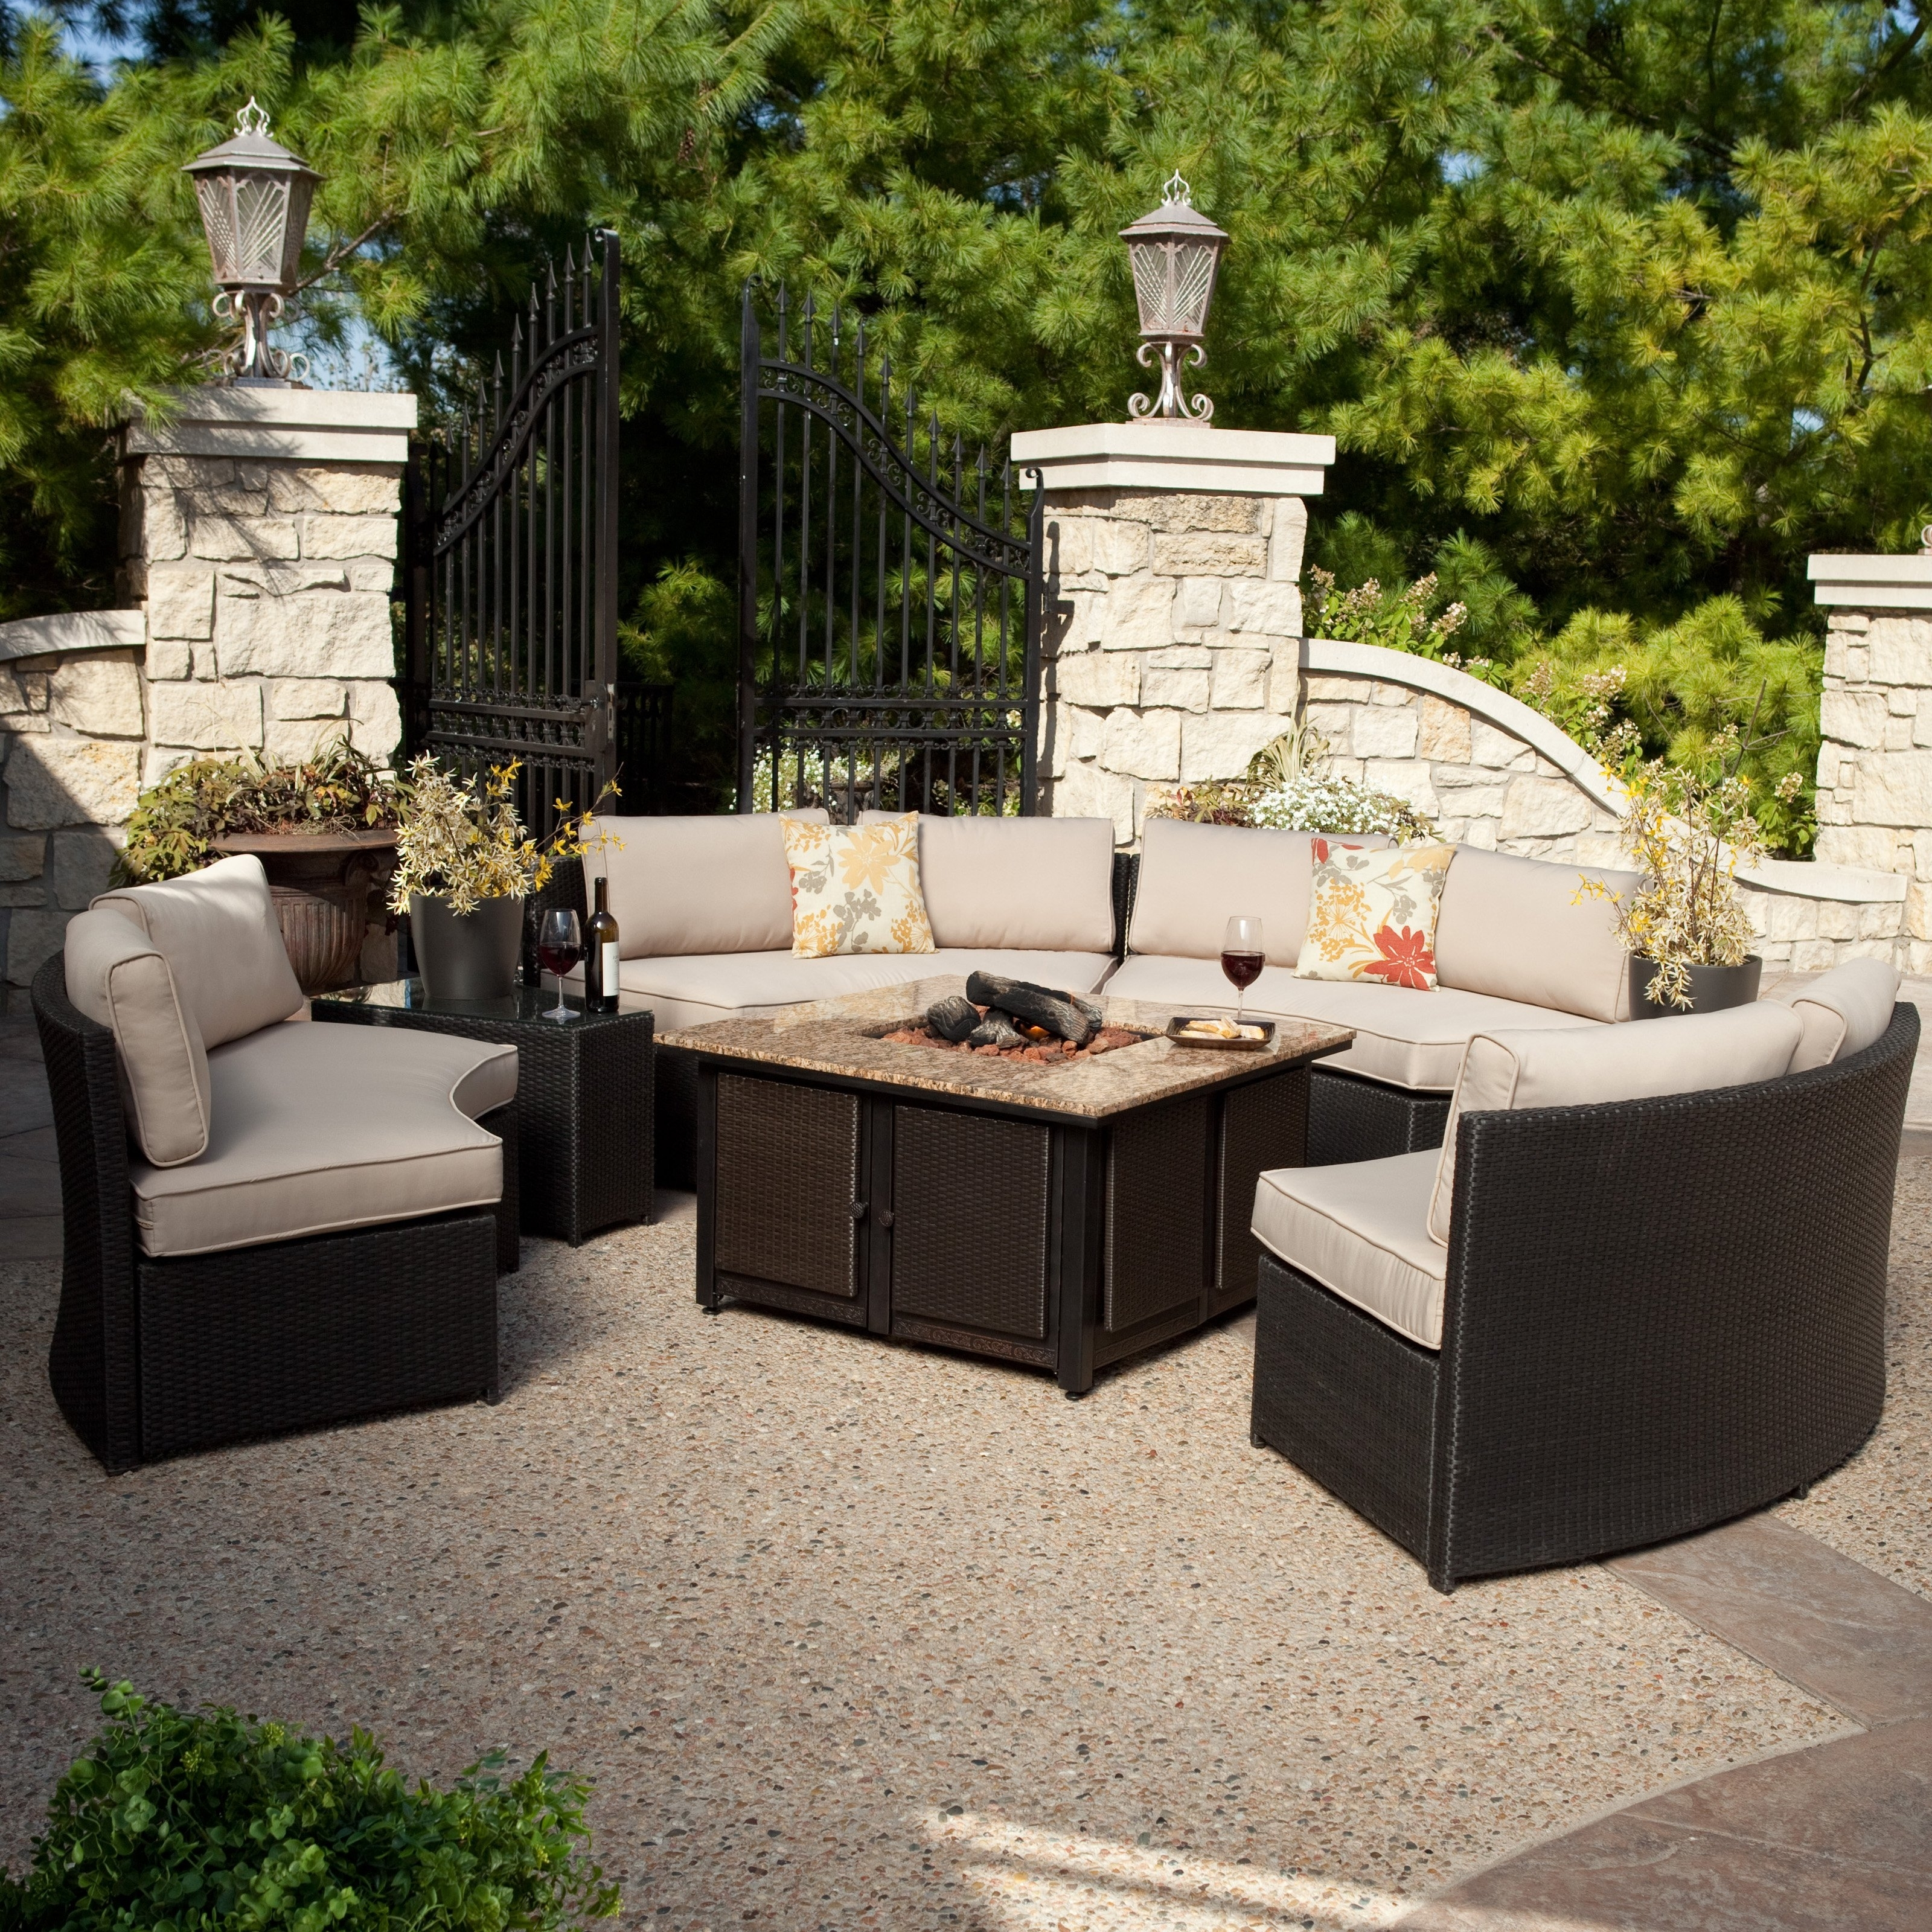 Current Revisited Fire Pit Conversation Sets Shrewd Patio Furniture Decor Intended For Patio Furniture Conversation Sets With Fire Pit (View 4 of 15)